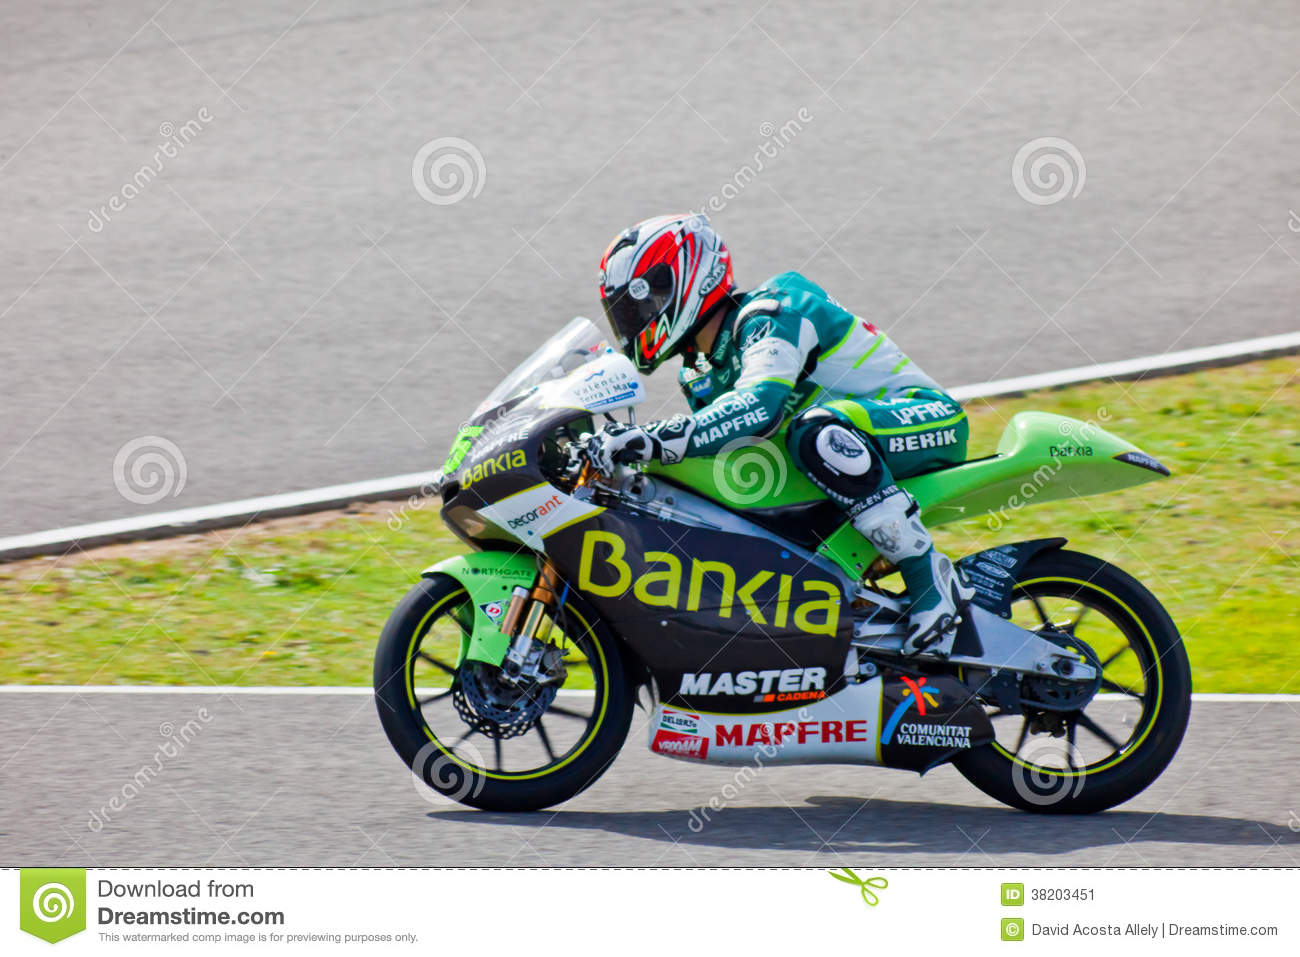 Hector Faubel Pilot Of 125cc Of The MotoGP Editorial Photo - Image: 38203451